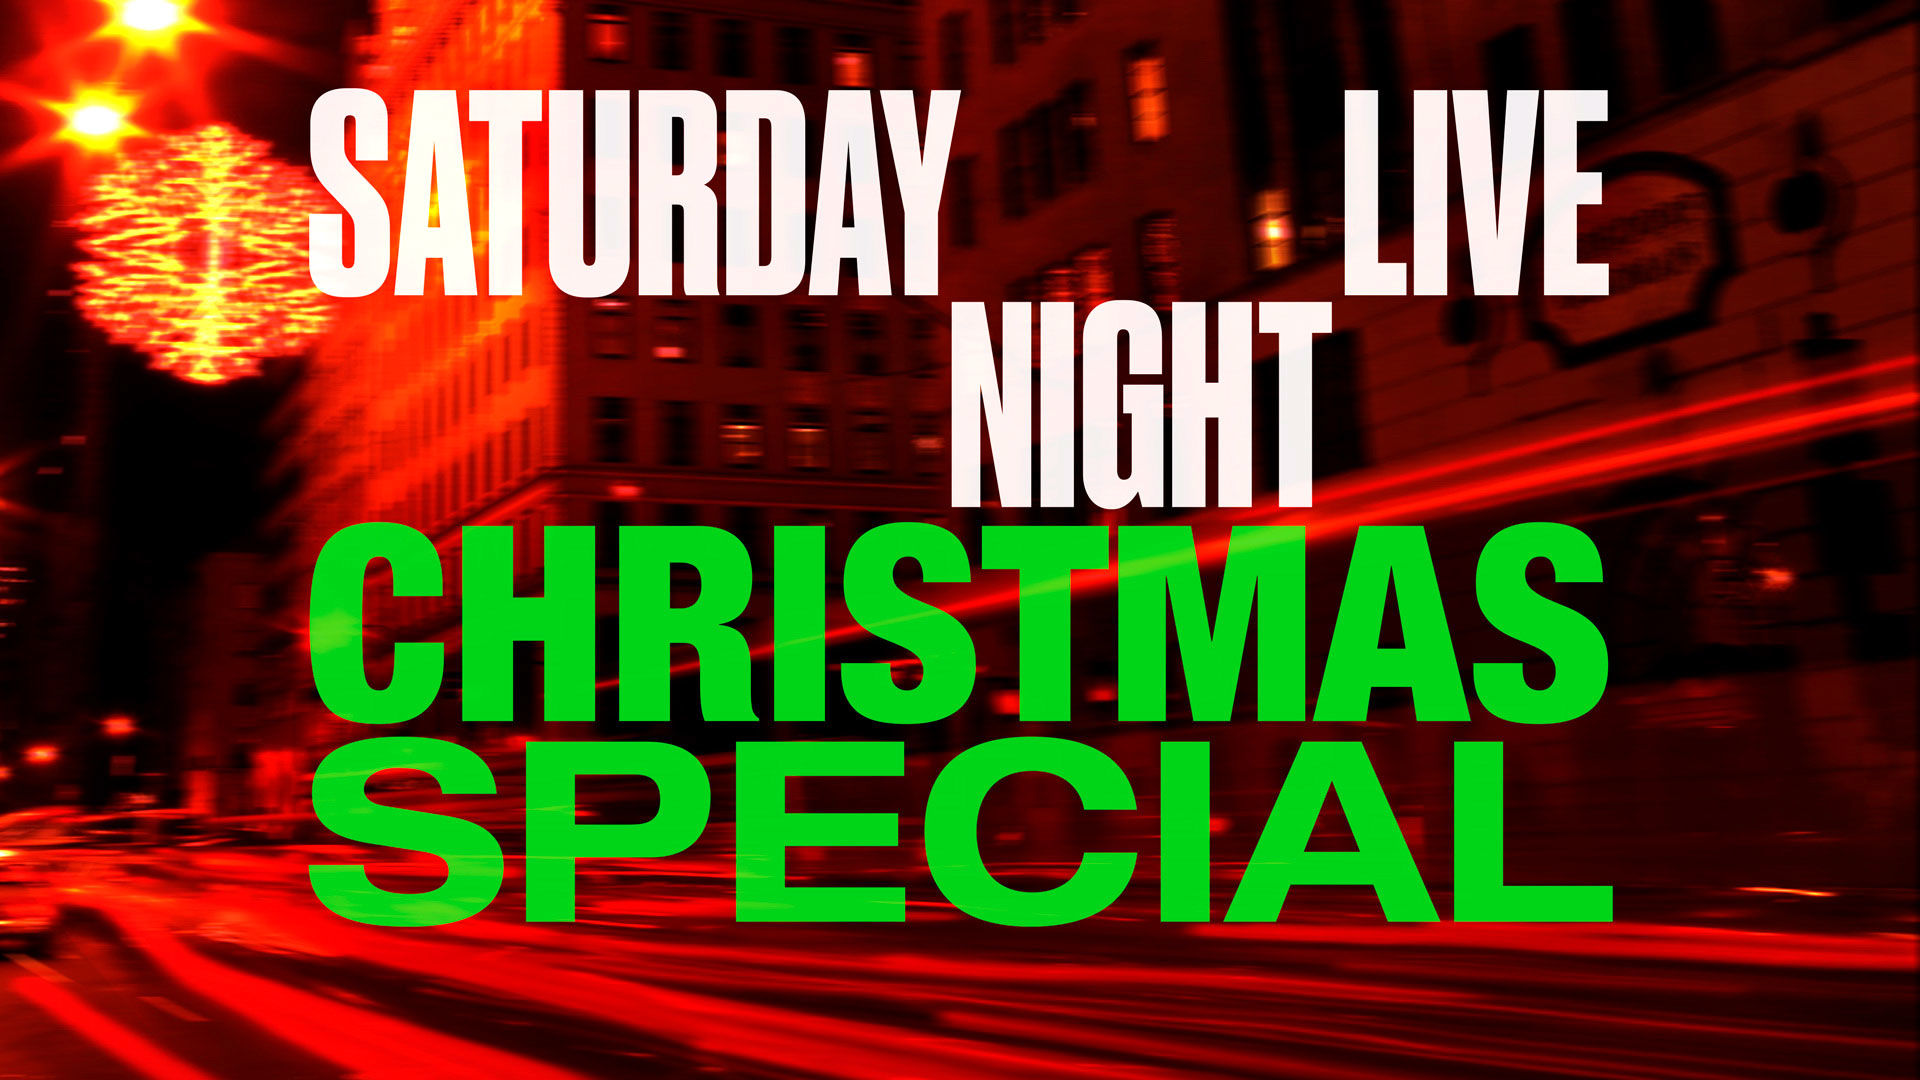 Saturday Night Live - A Saturday Night Live Christmas Special extra